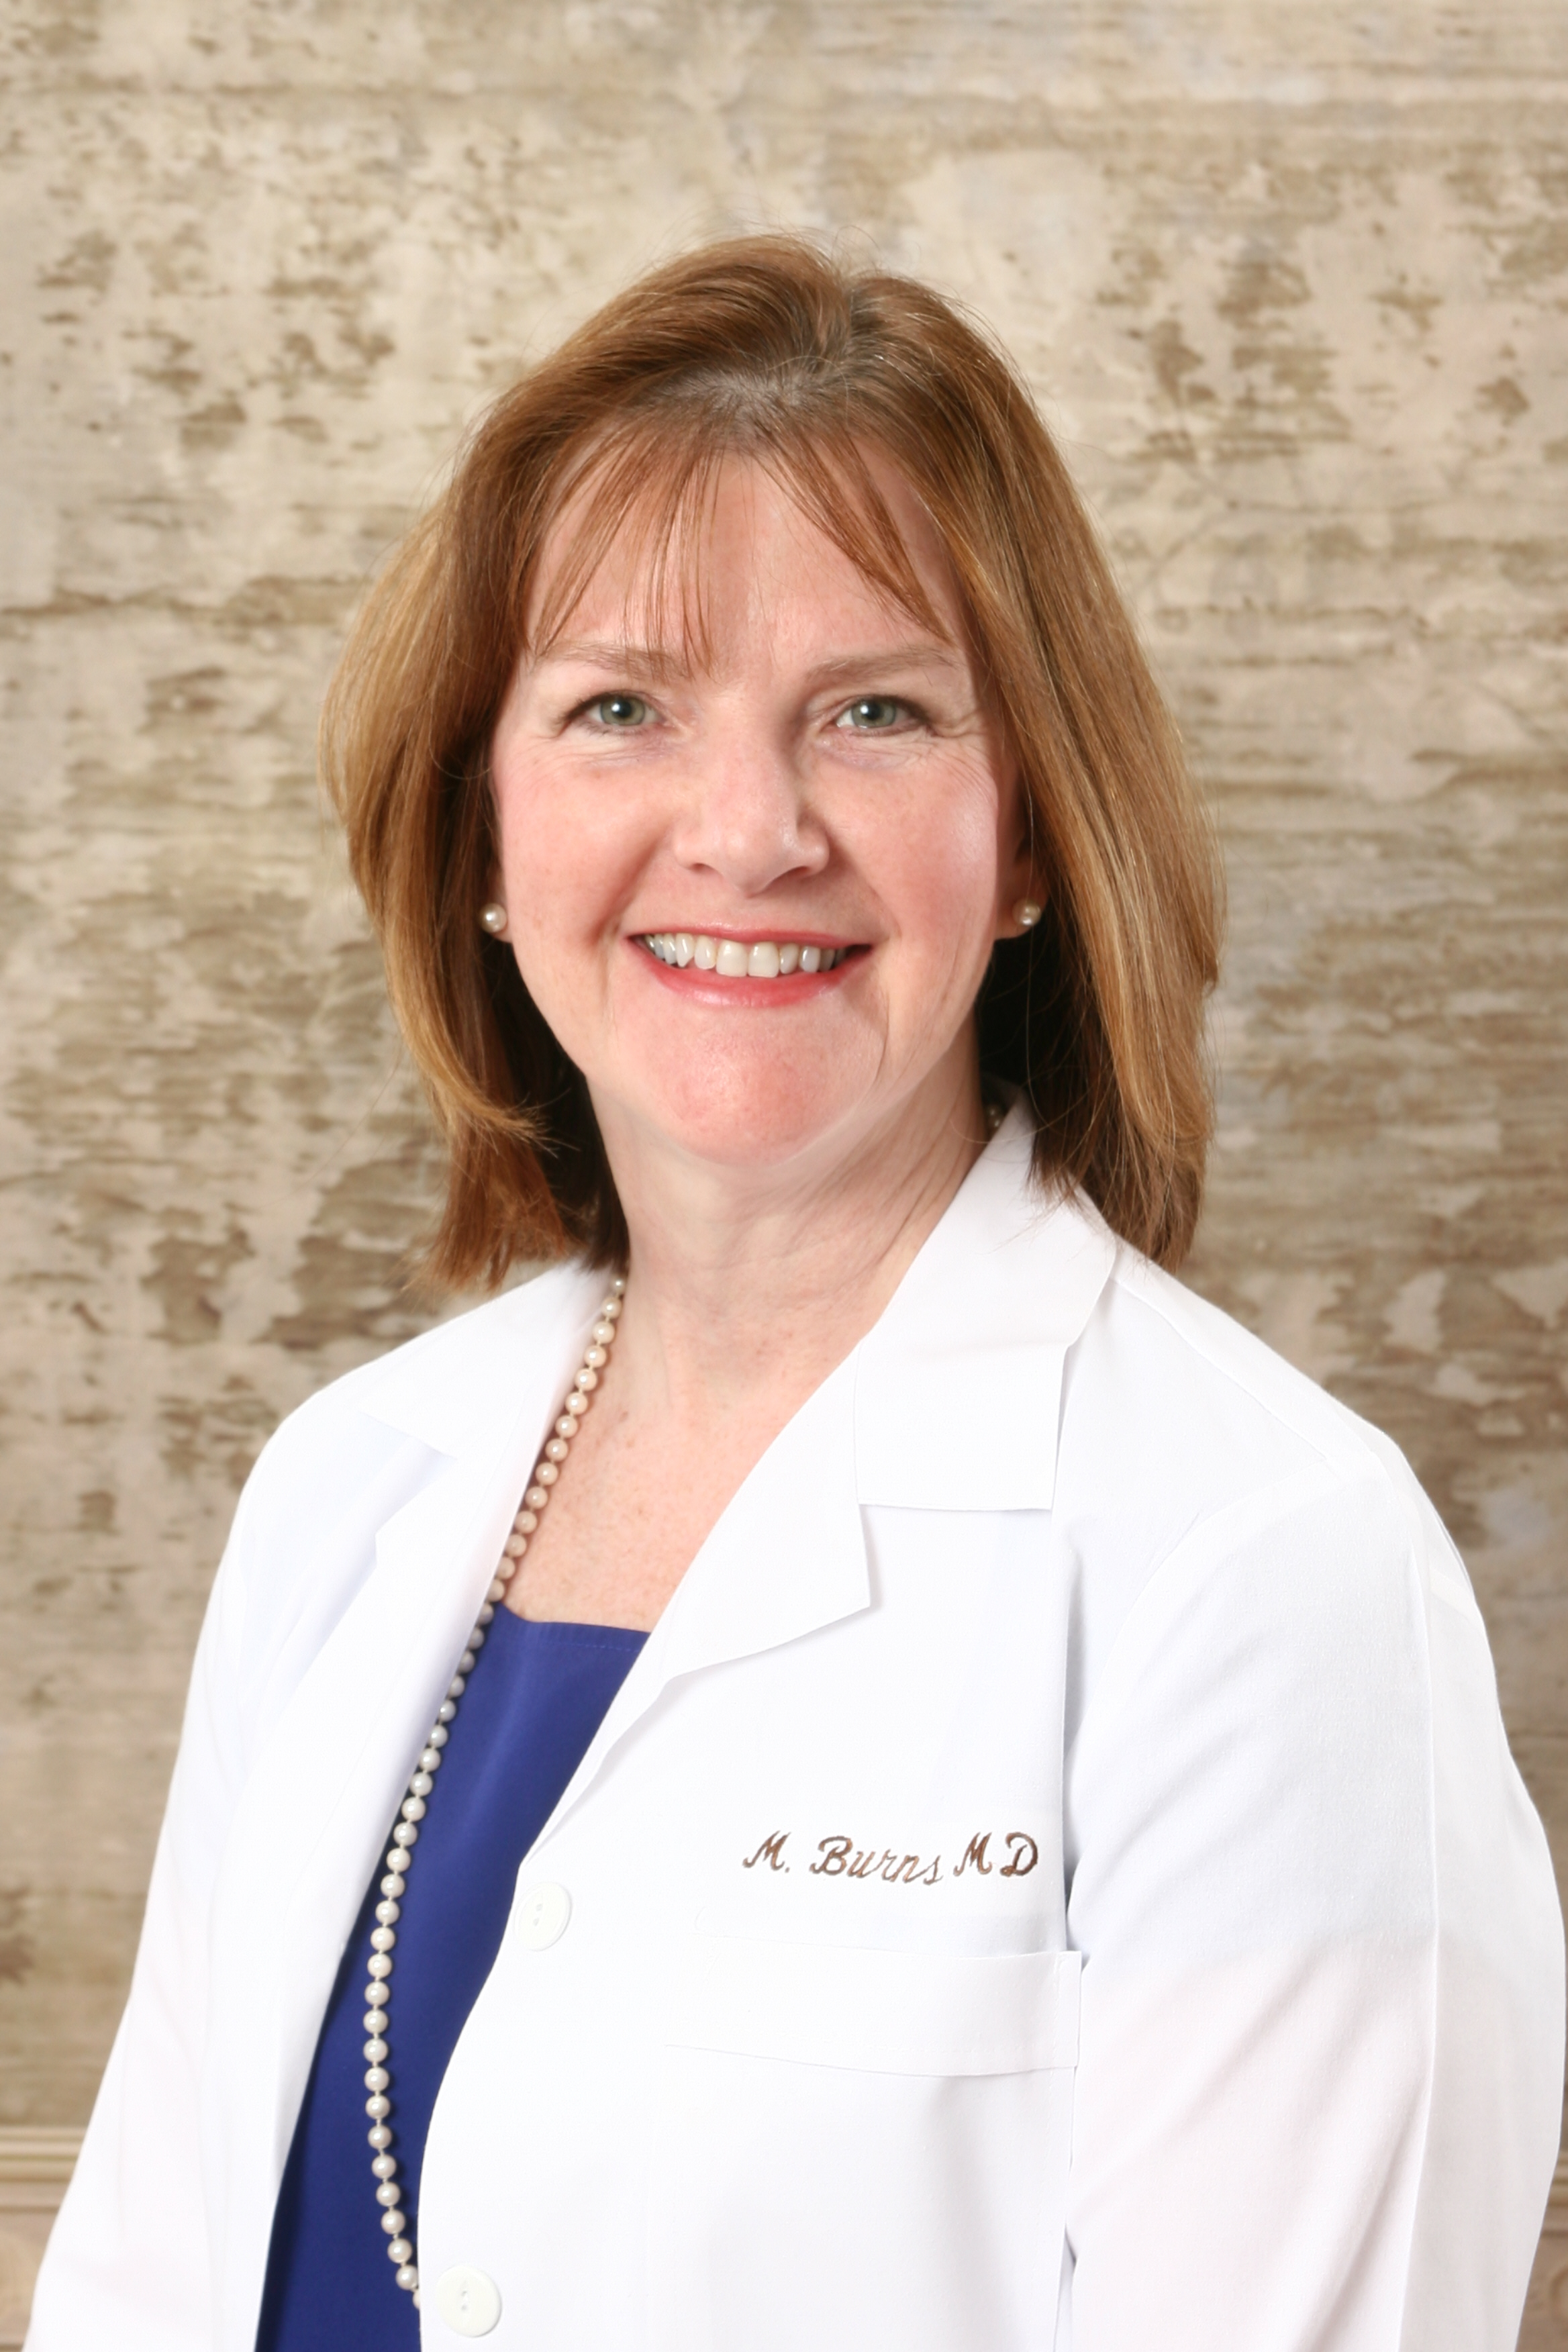 Dr Talreja Virginia Beach Obgyn